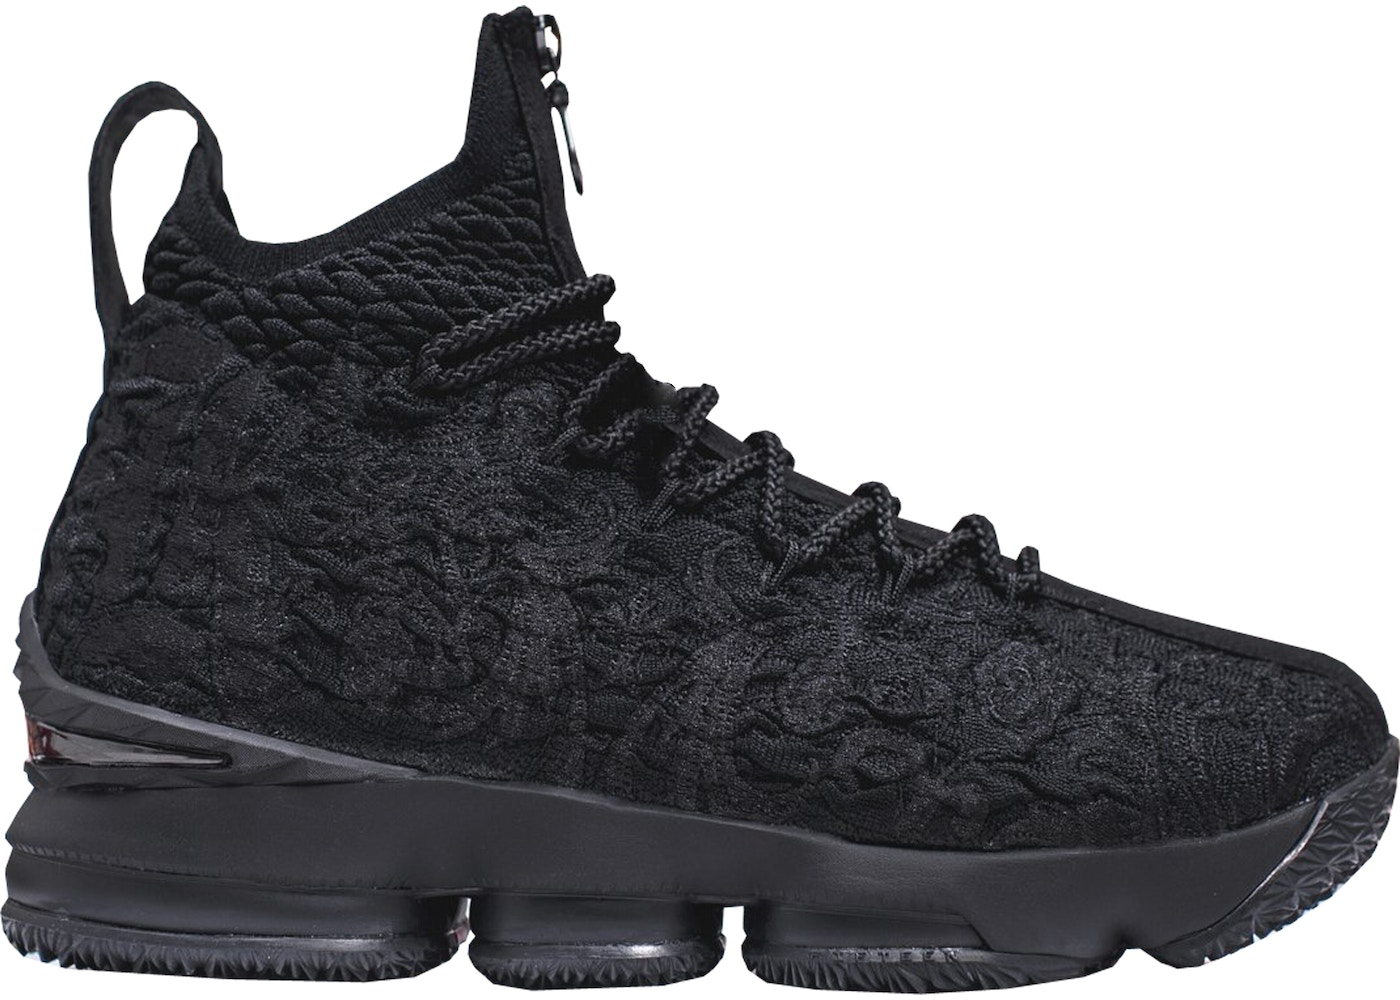 purchase cheap c397d 91bf6 ... BRAND NEW AUTHENTIC KITH x NIKE LEBRON PERFORMANCE XV 15 TRIPLE BLACK  DEADSTOCK. NEW Nike Air Max ...